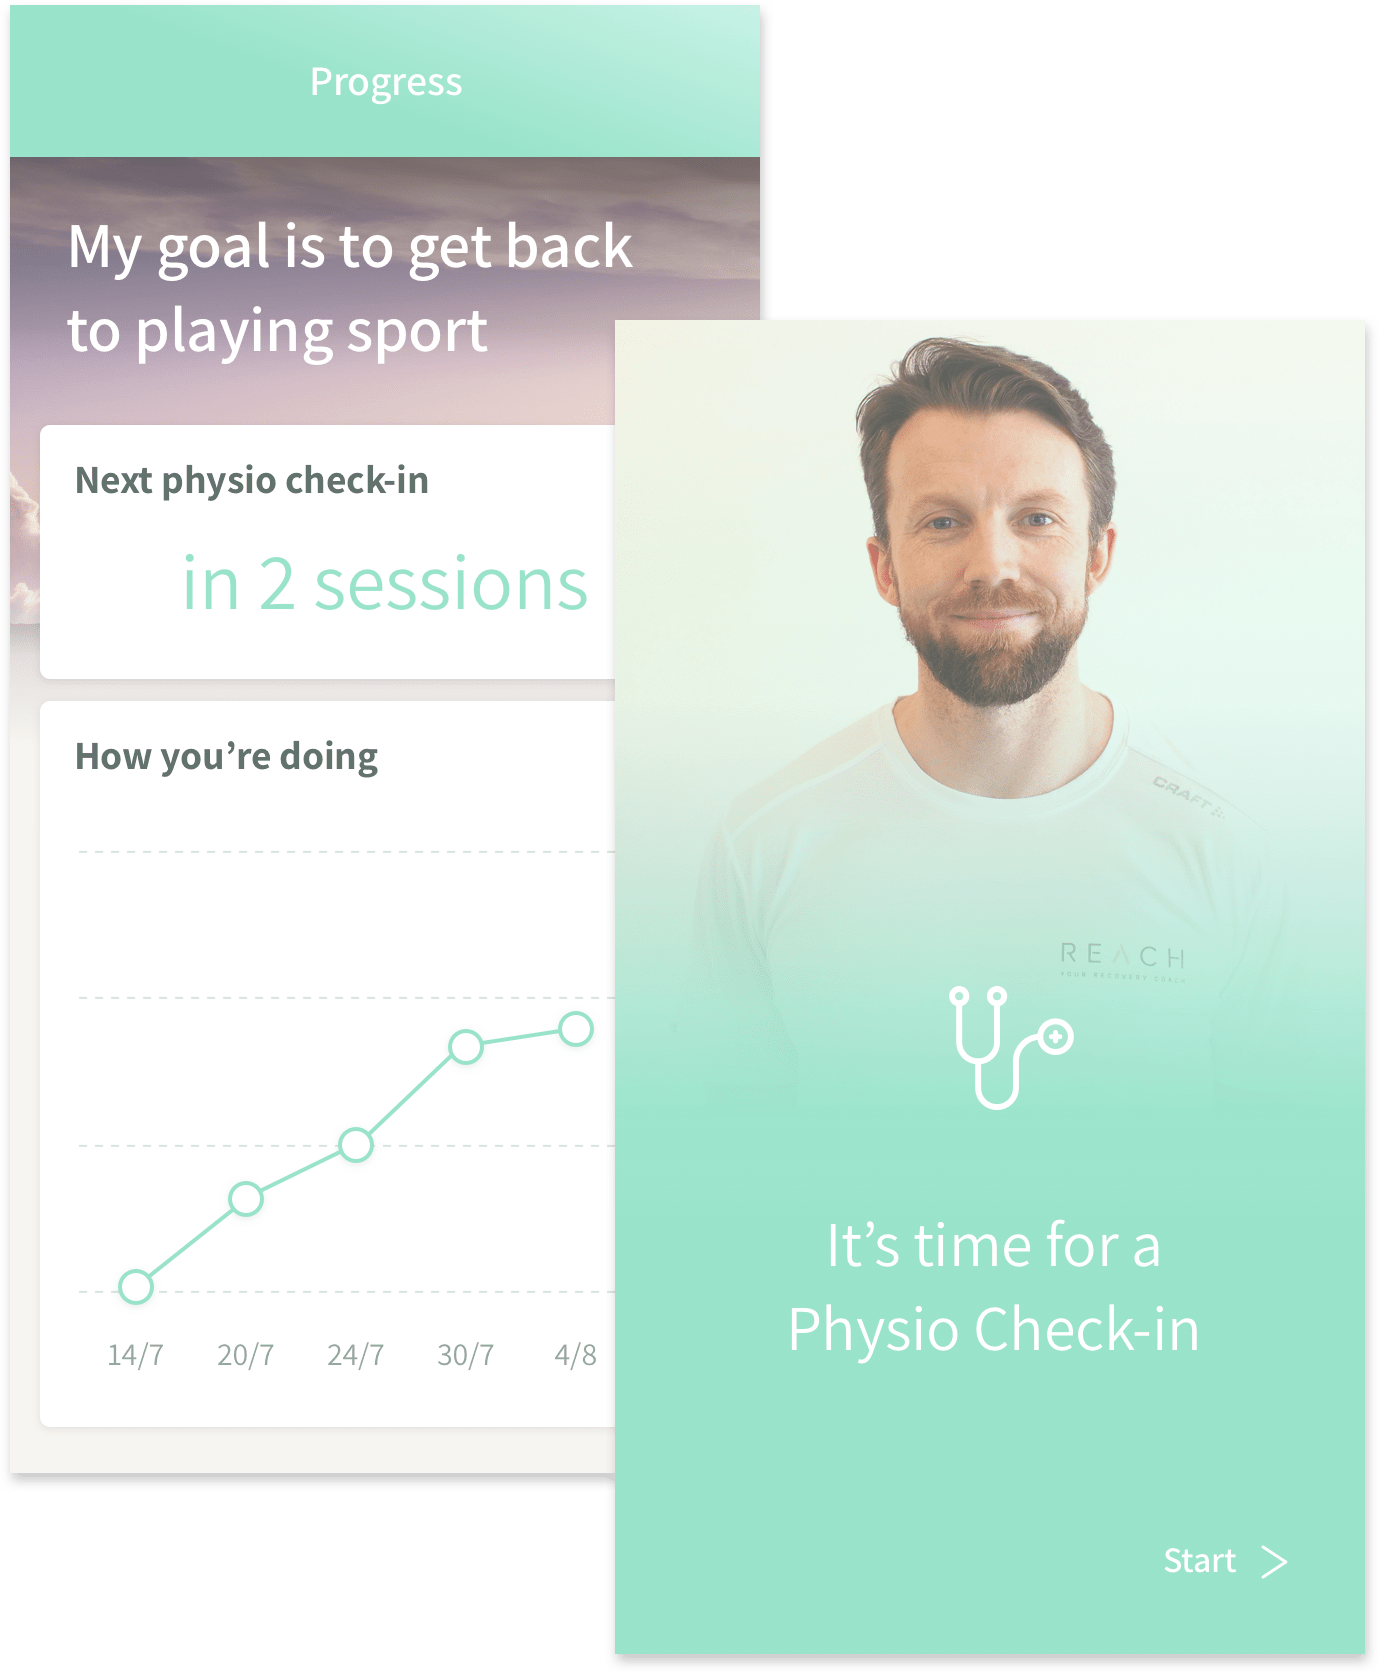 Image of personal goal in reach's physio app